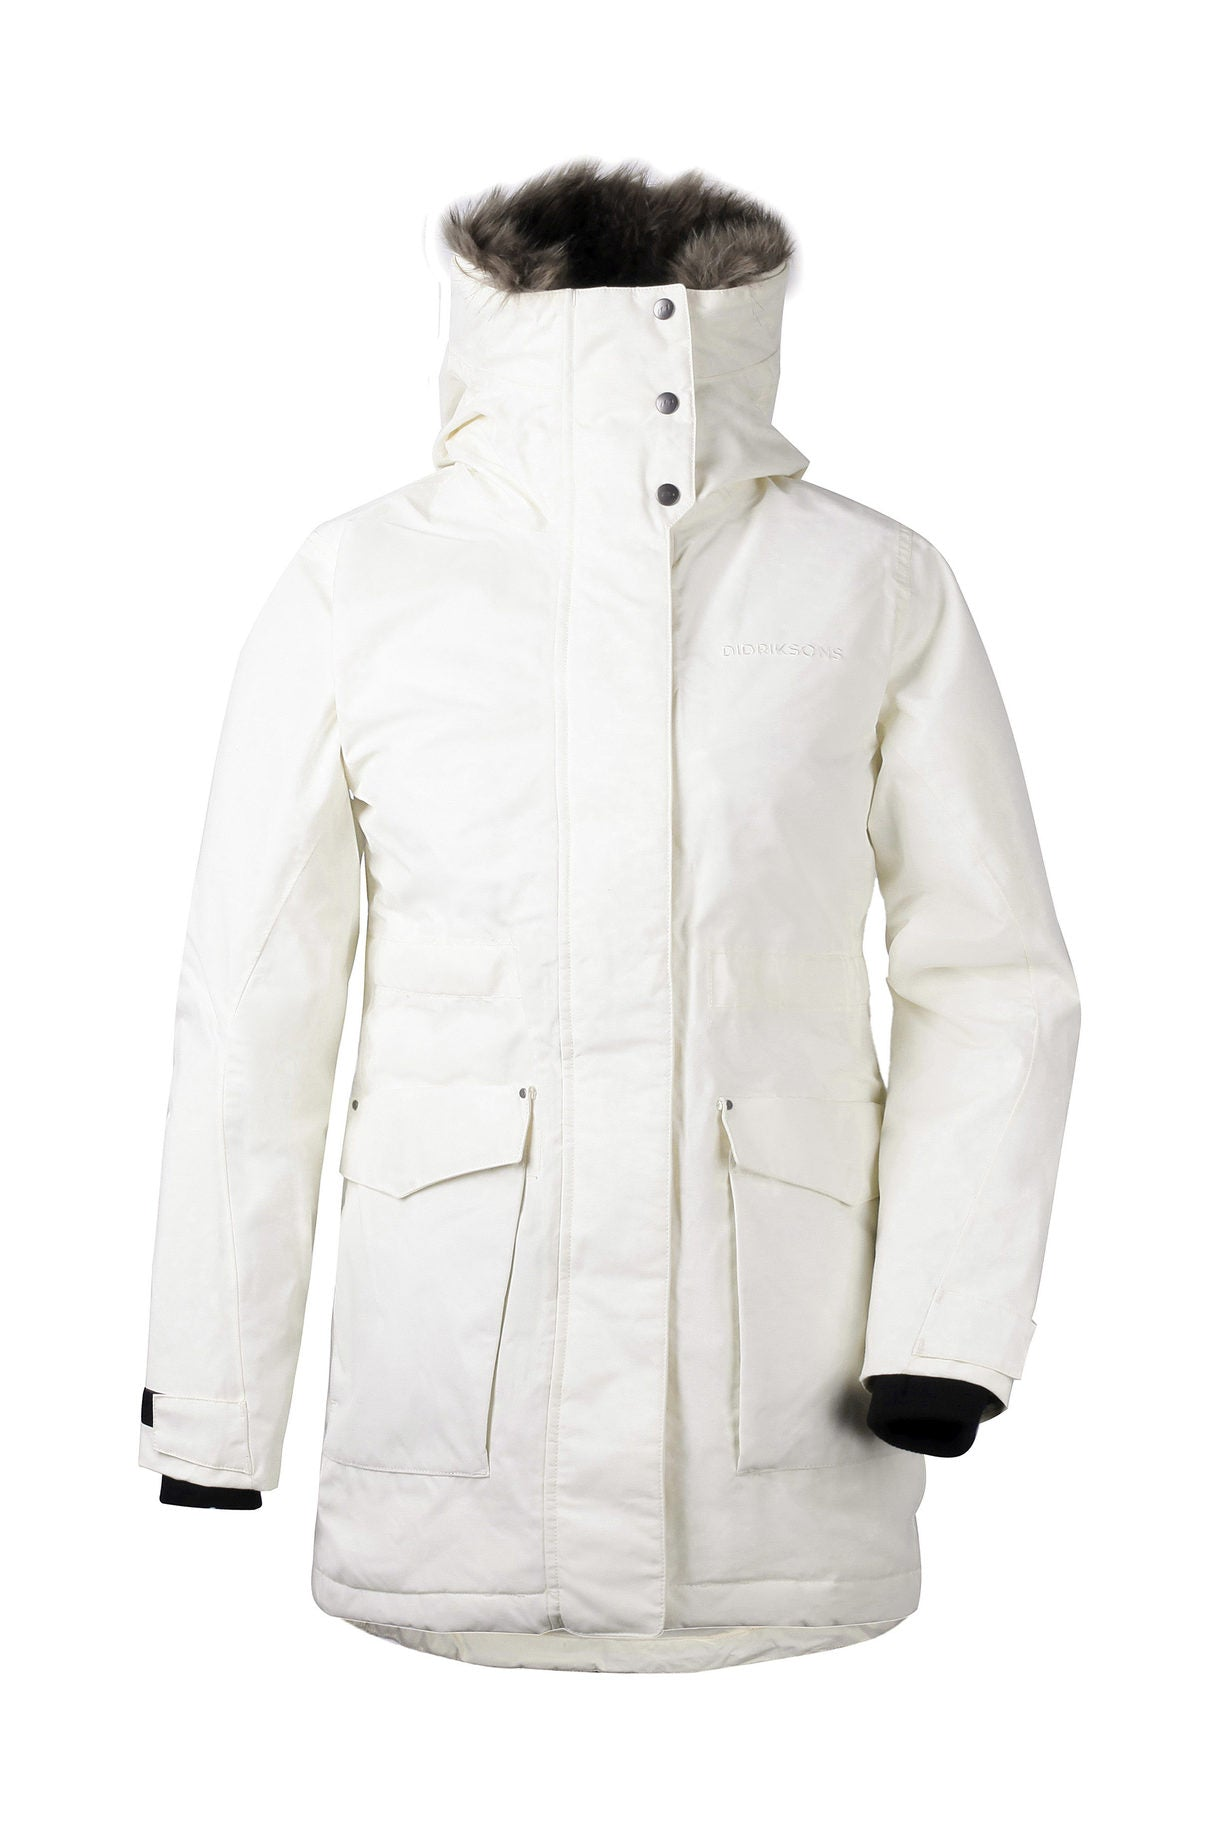 Didriksons Meja Parka II for Ladies in Organic White